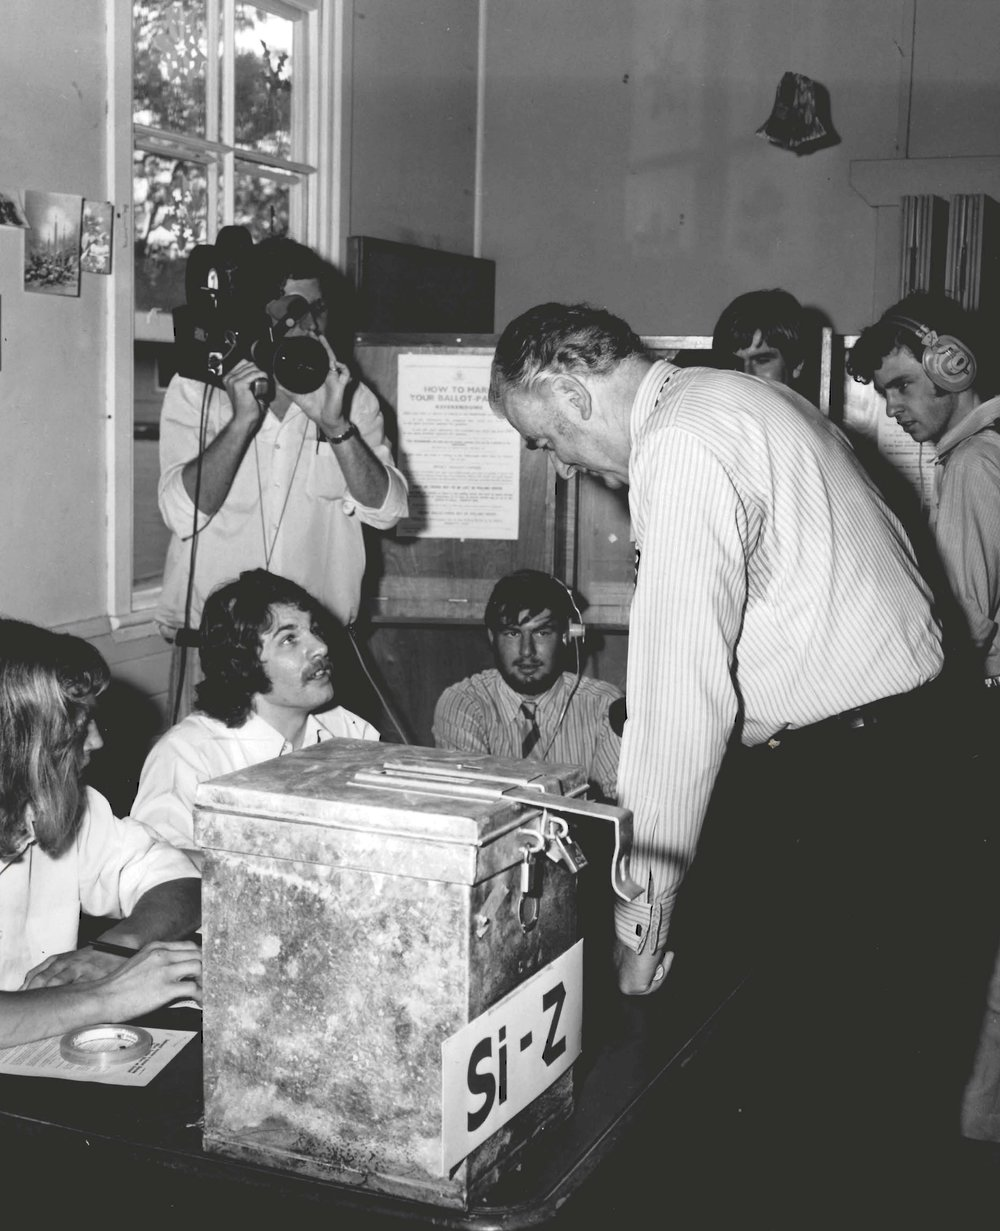 Gough Whitlam casting his vote